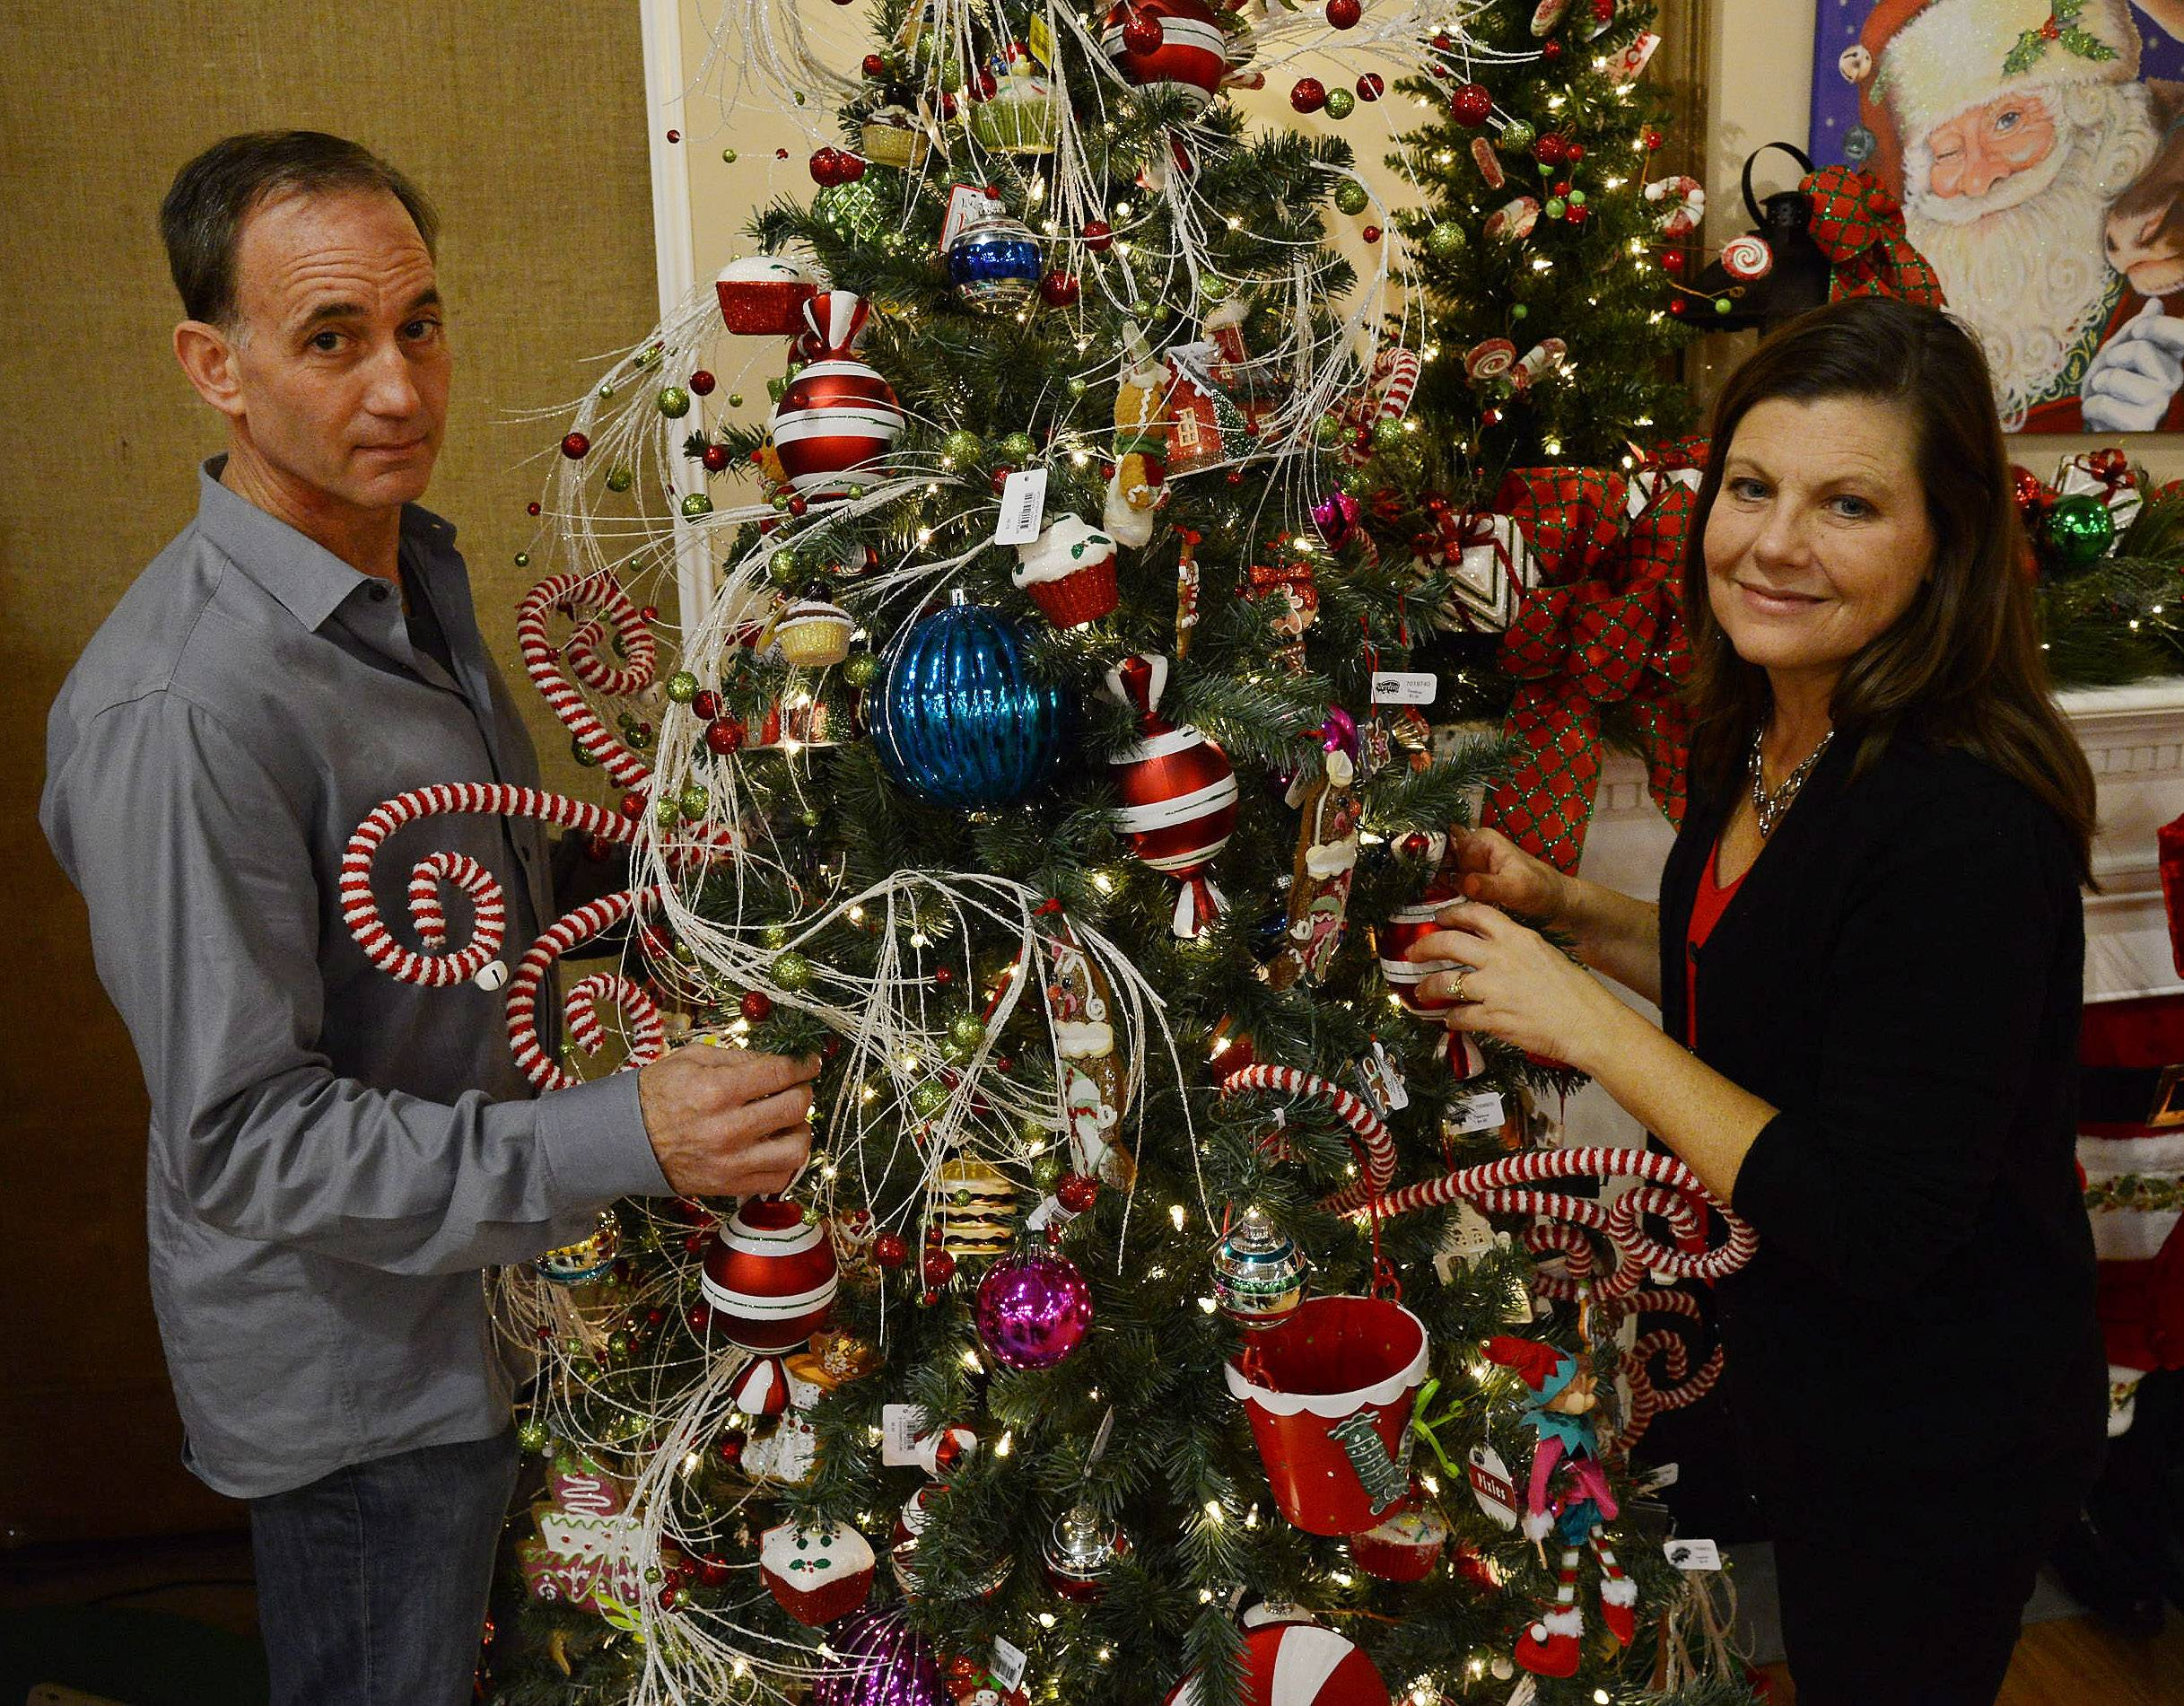 Joe and Laurie Kane work to make their store, Treetime Christmas Creations in Lake Barrington, an annual destination for shoppers.